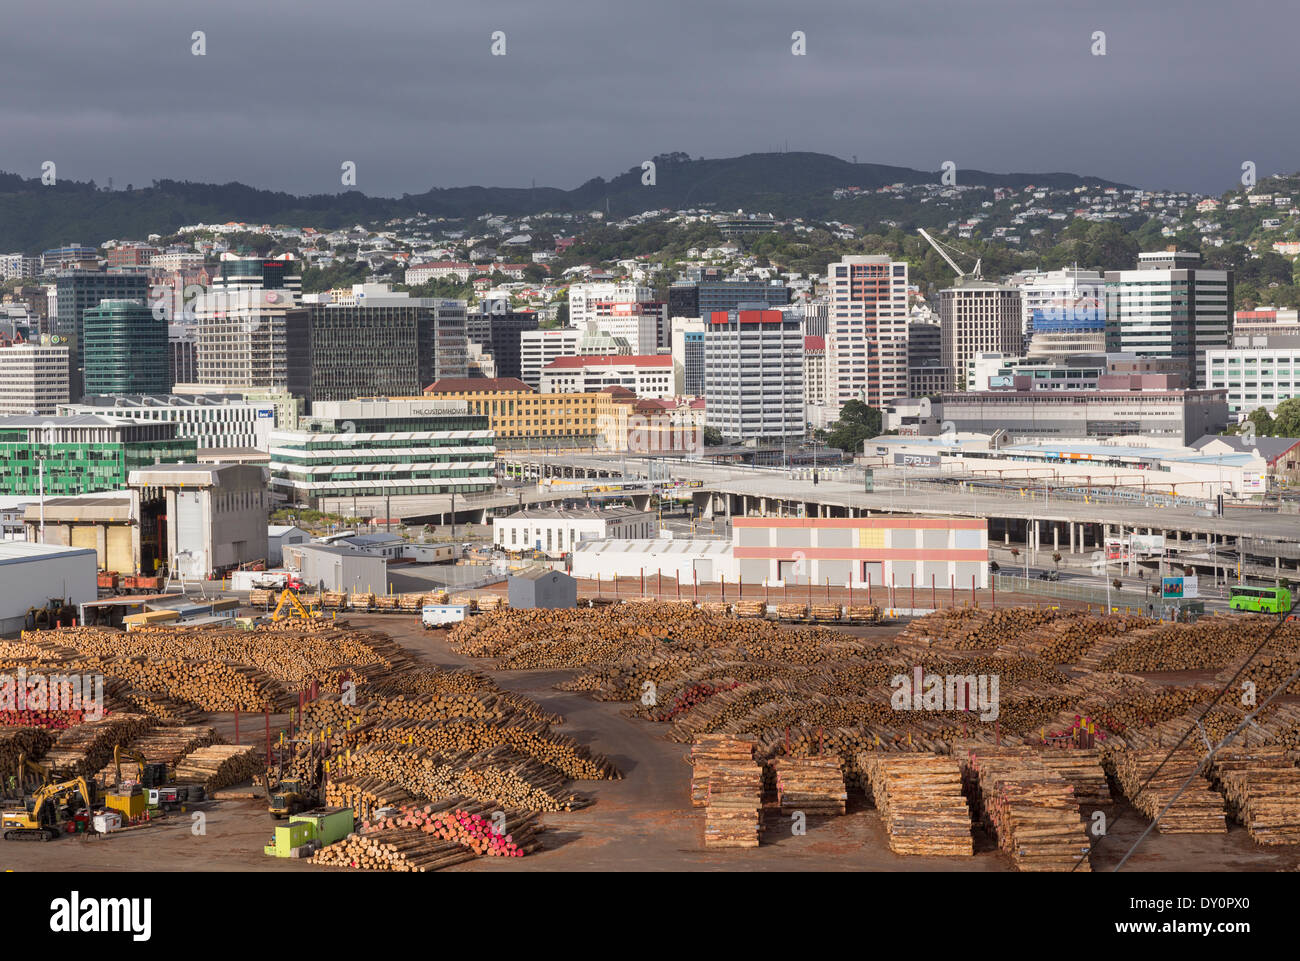 Wellington, New Zealand   Downtown Skyscrapers And Office Buildings With  Lumber At The Port Ready For Export